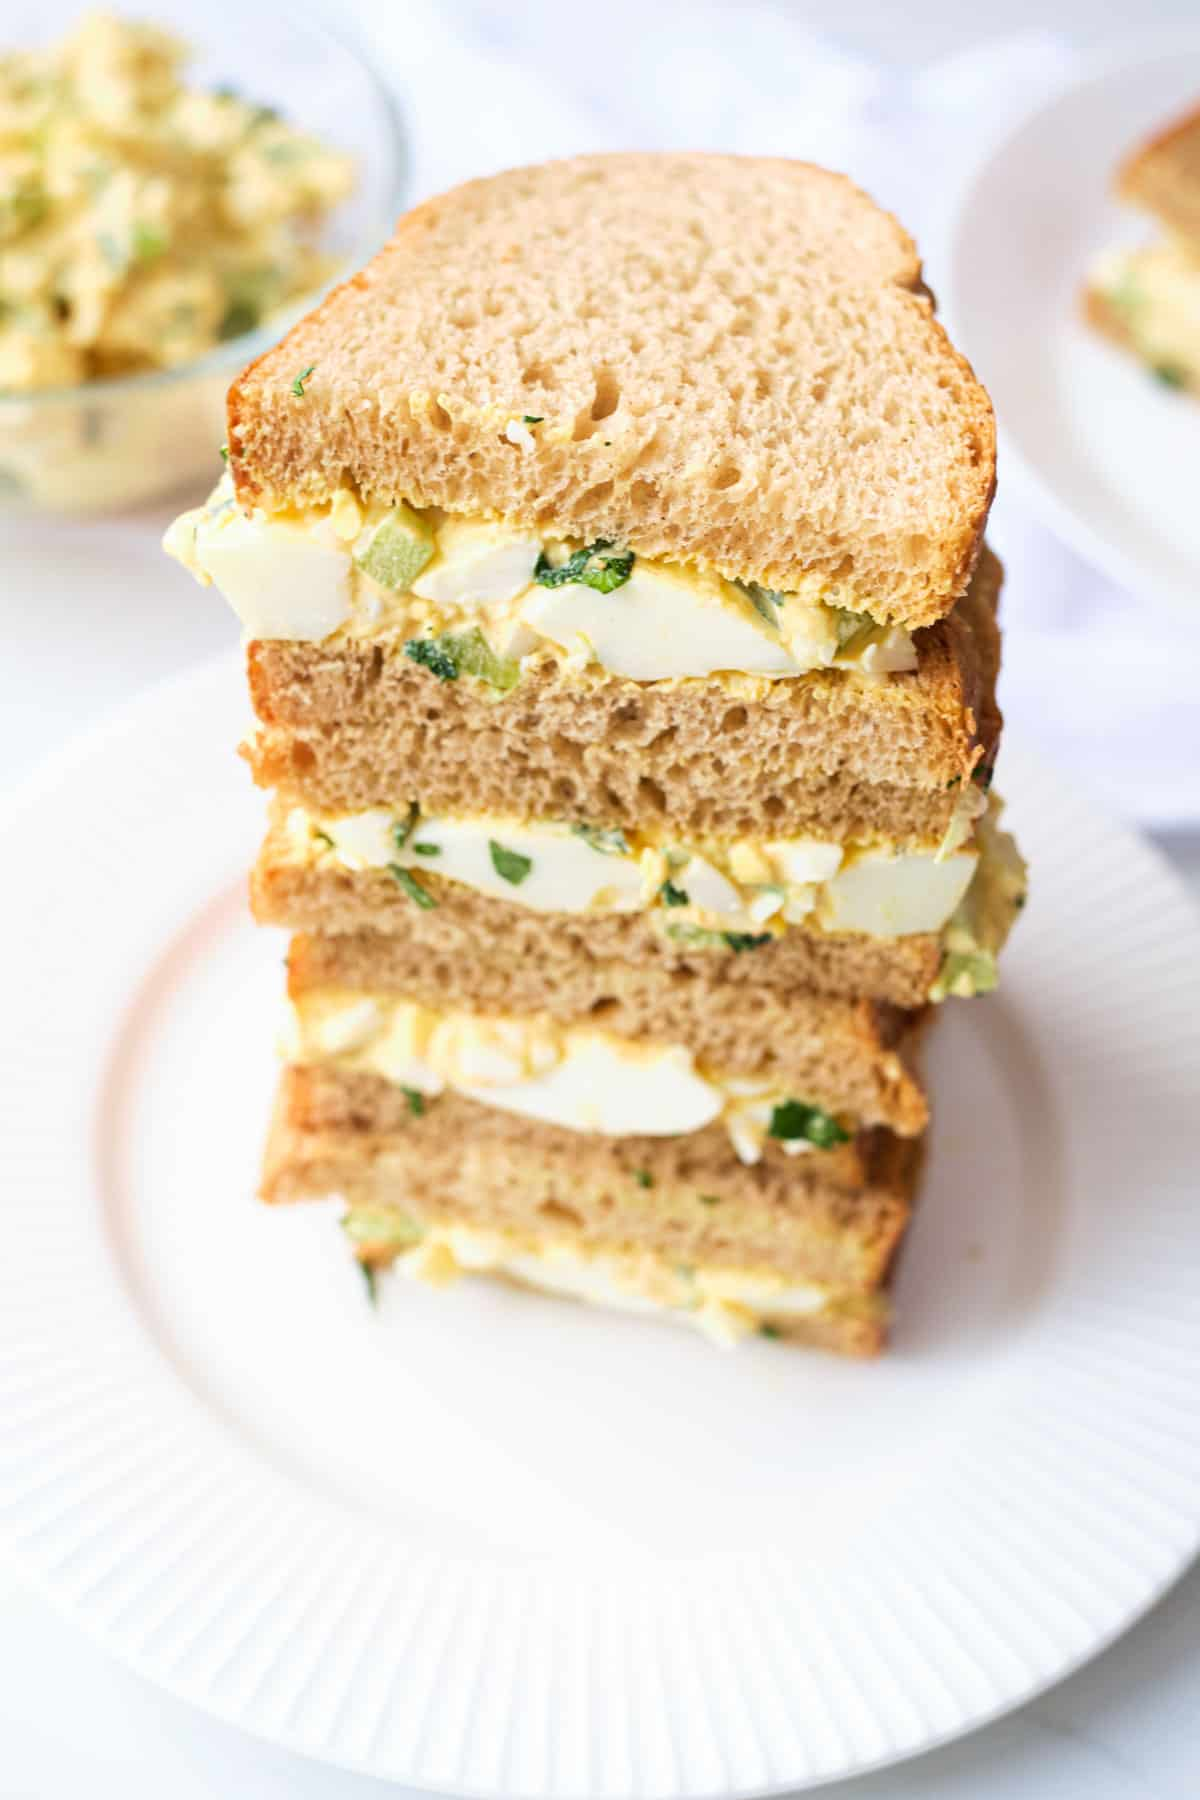 three-quarters view of a stack of completed Mexican Egg Salad Sandwiches